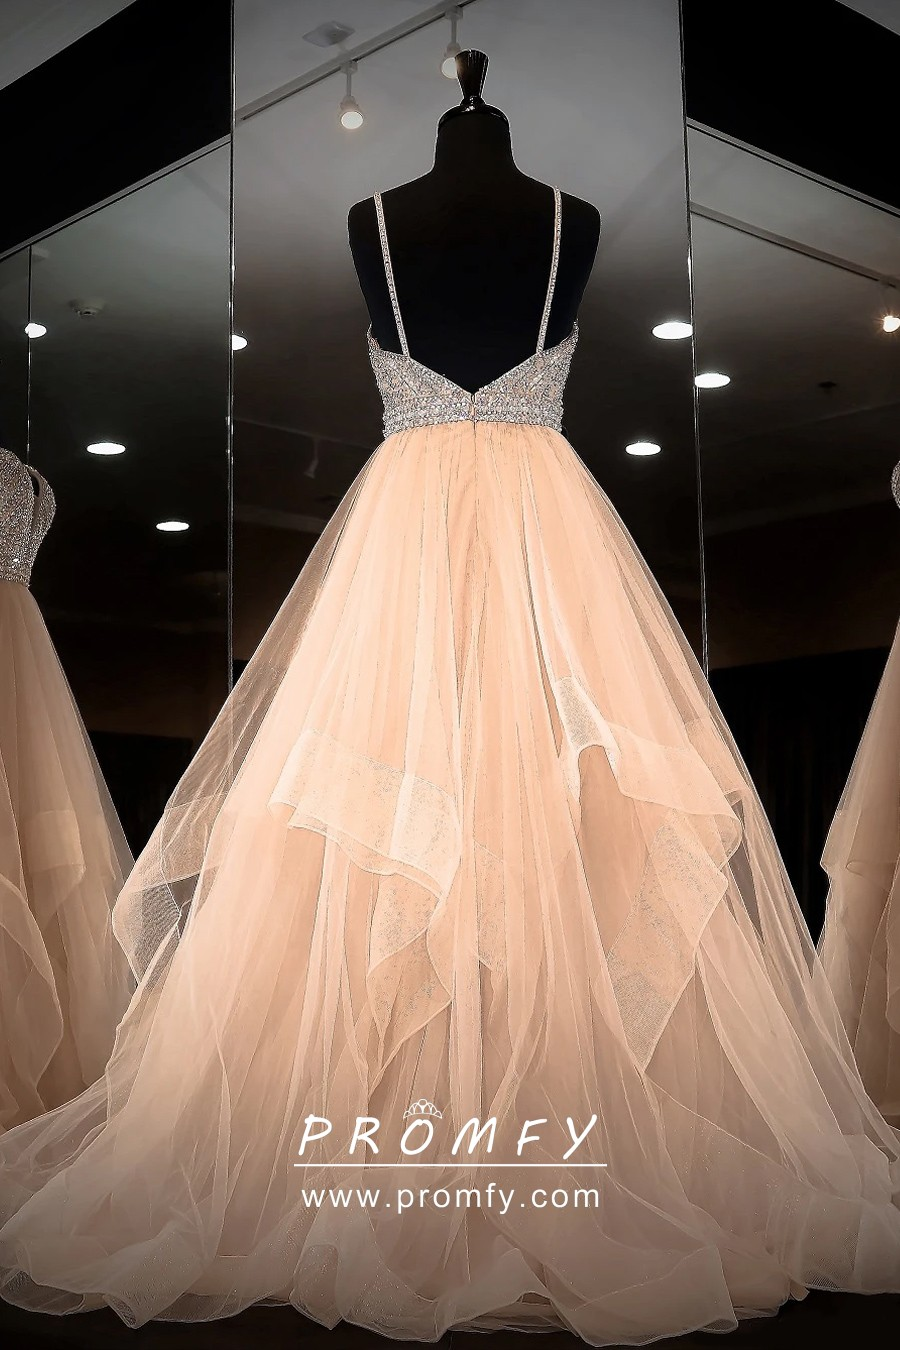 Alluring Nude Sheer Tulle with White Lace Prom Gown - Promfy